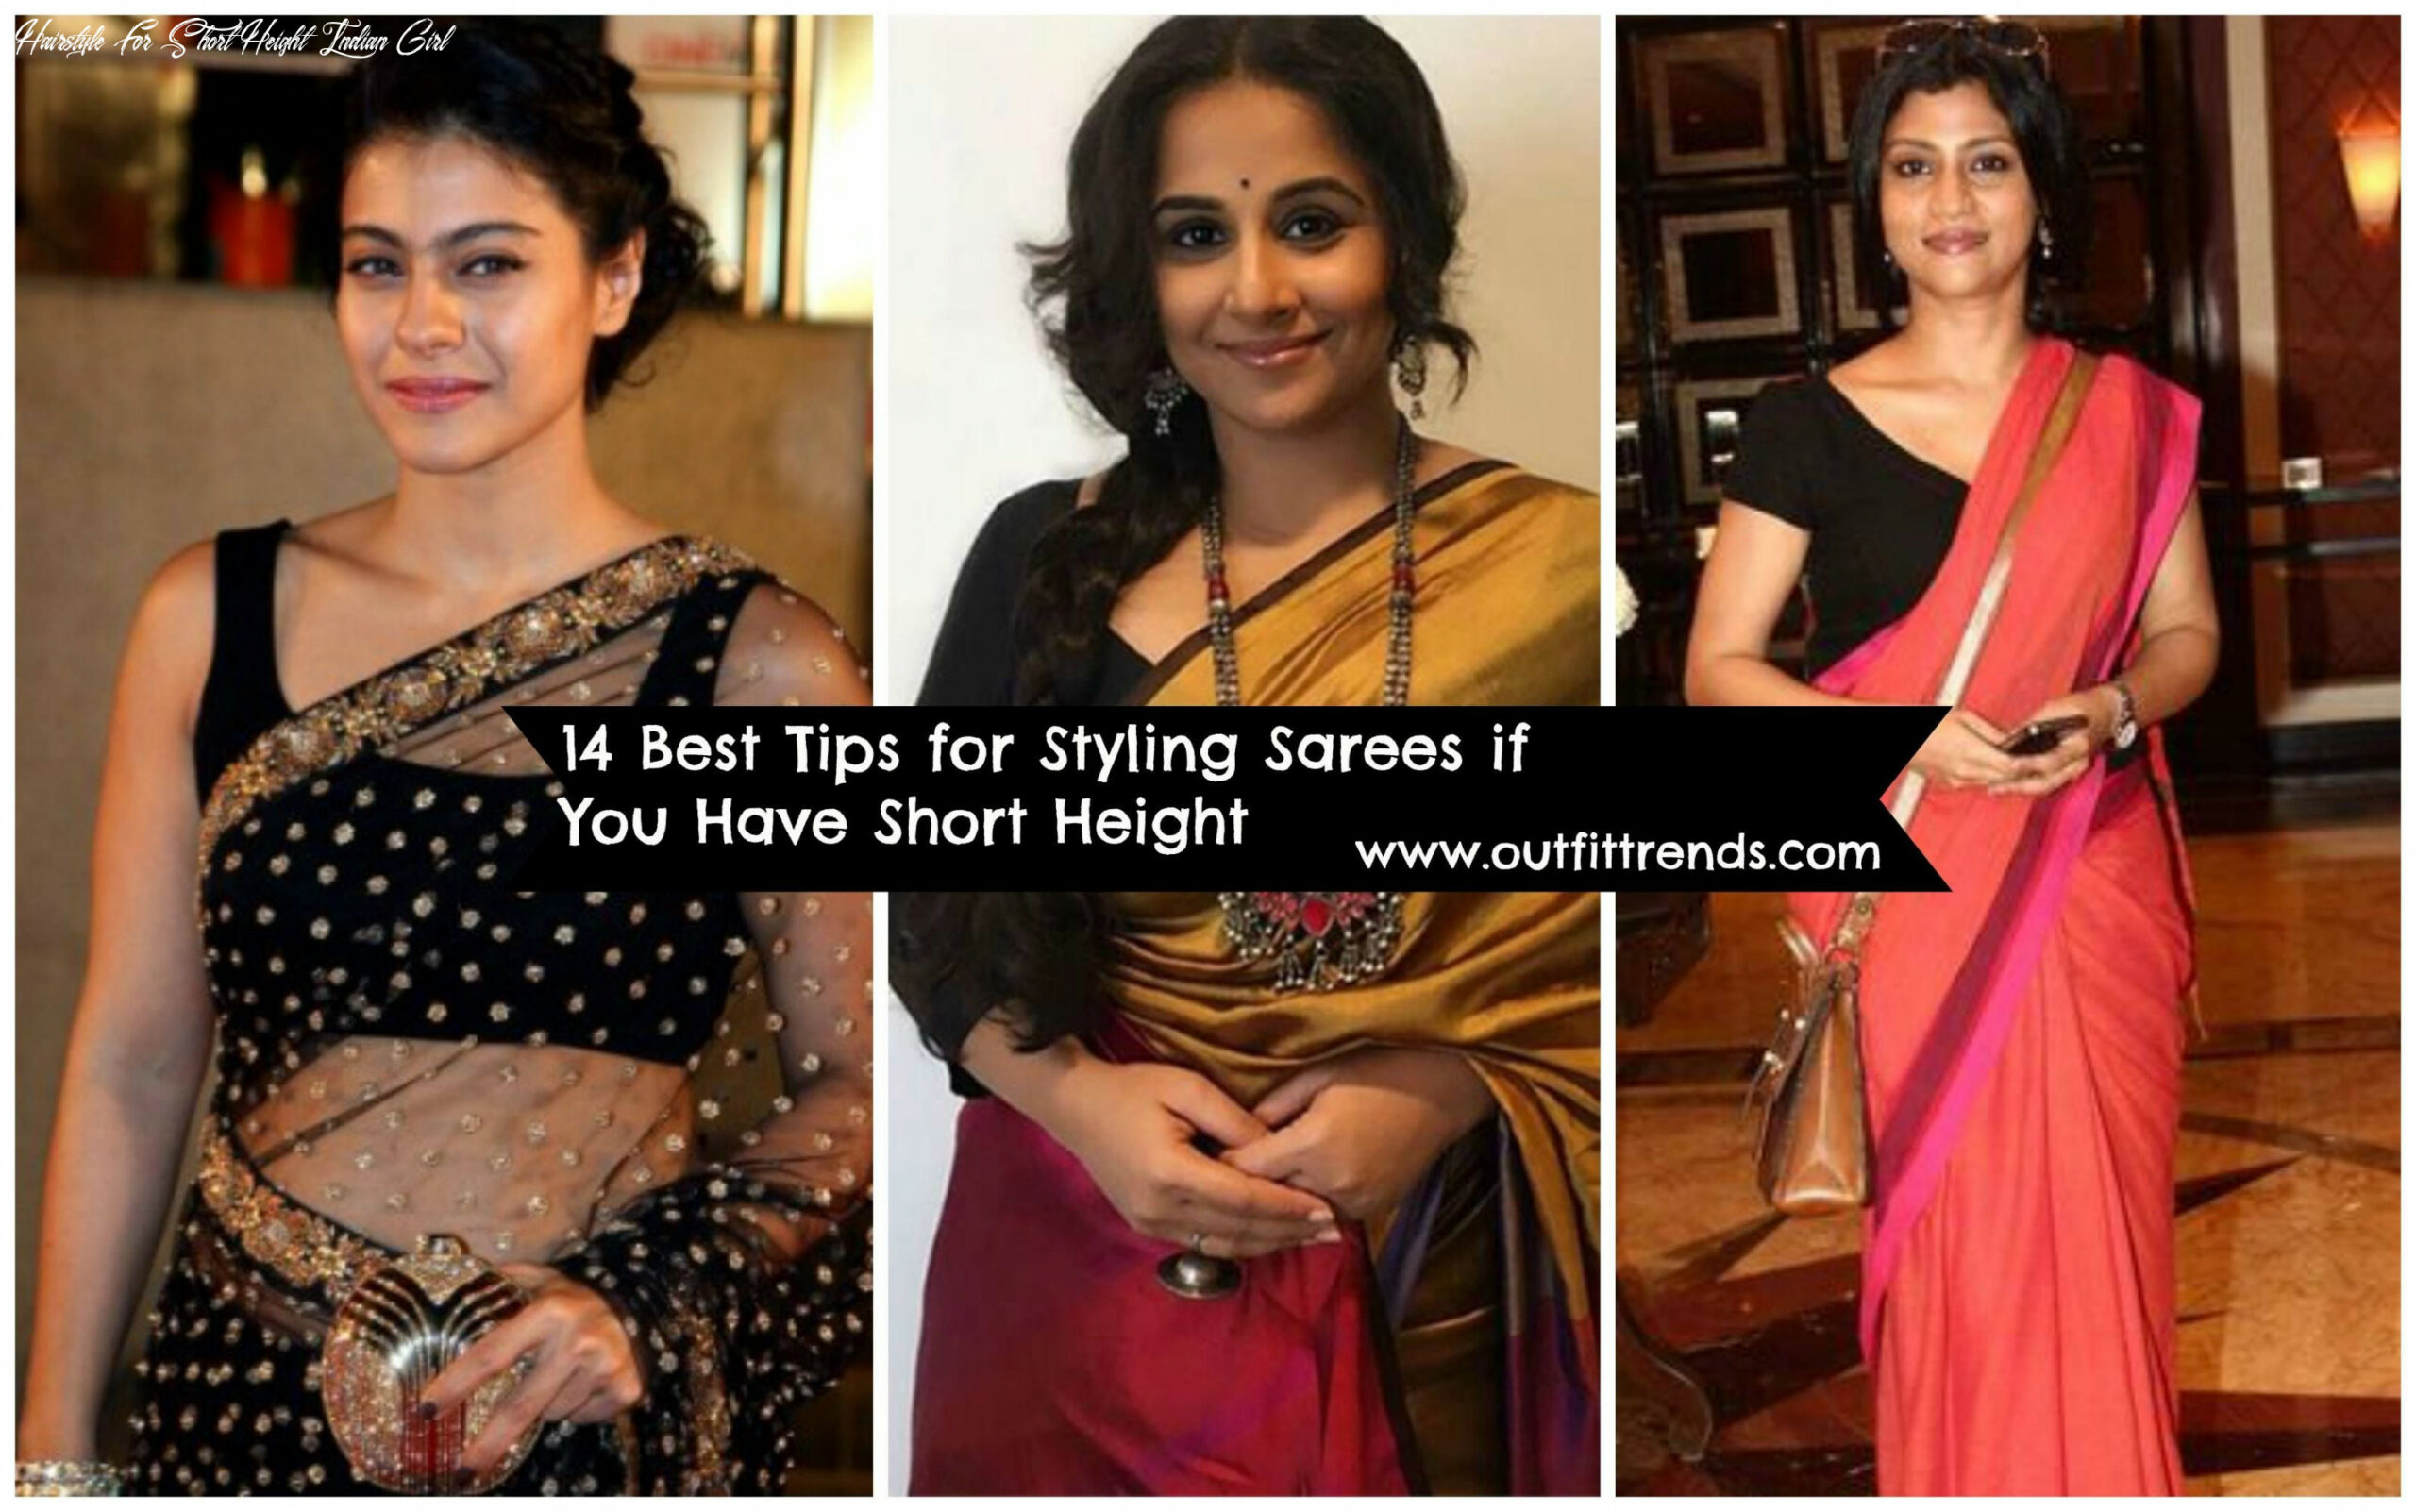 How to wear saree for short height? 8 pro tips for short girls